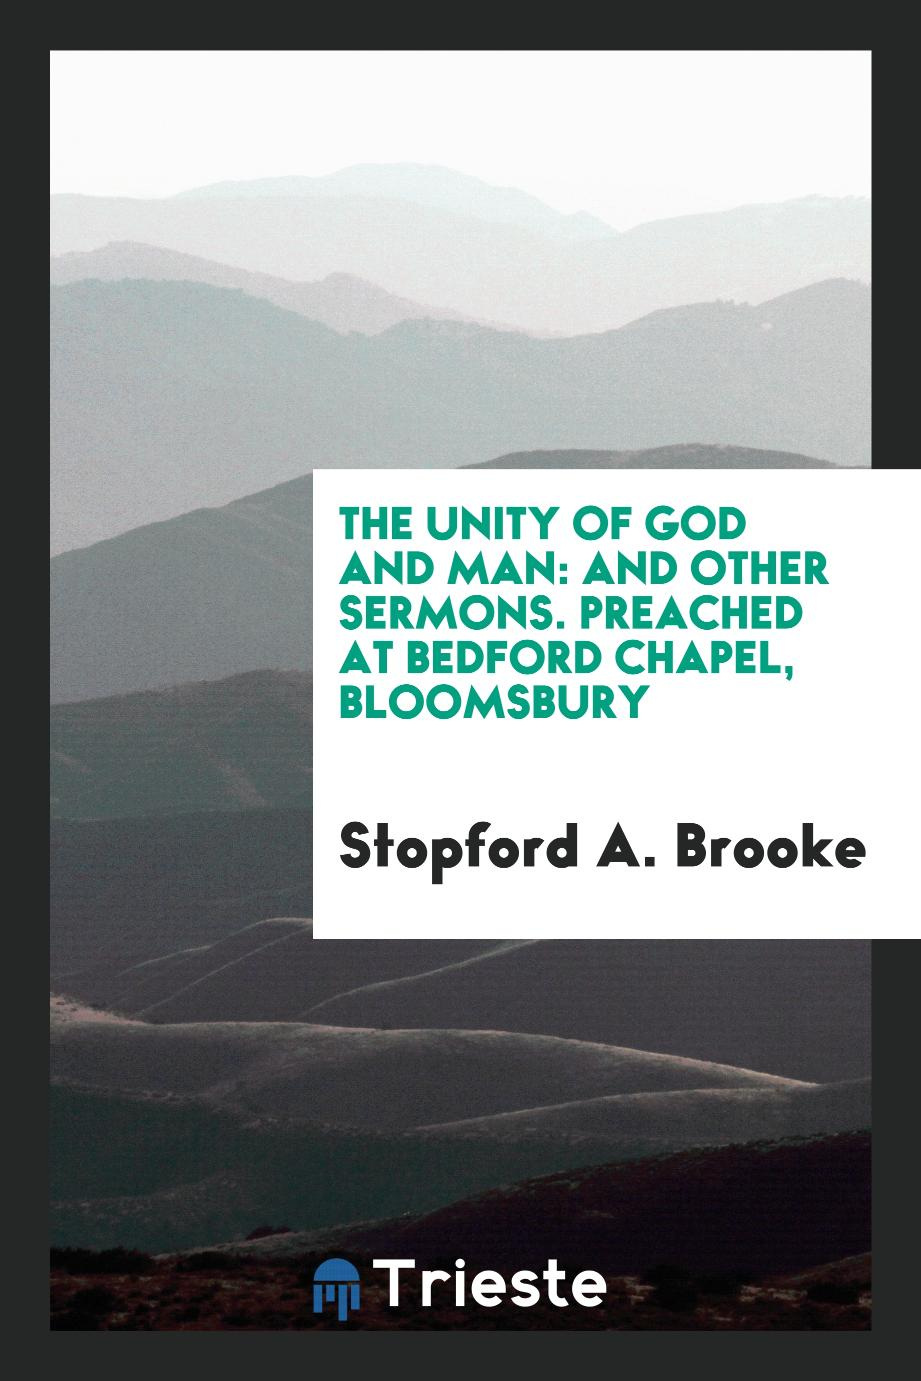 The Unity of God and Man: And Other Sermons. Preached at Bedford Chapel, Bloomsbury